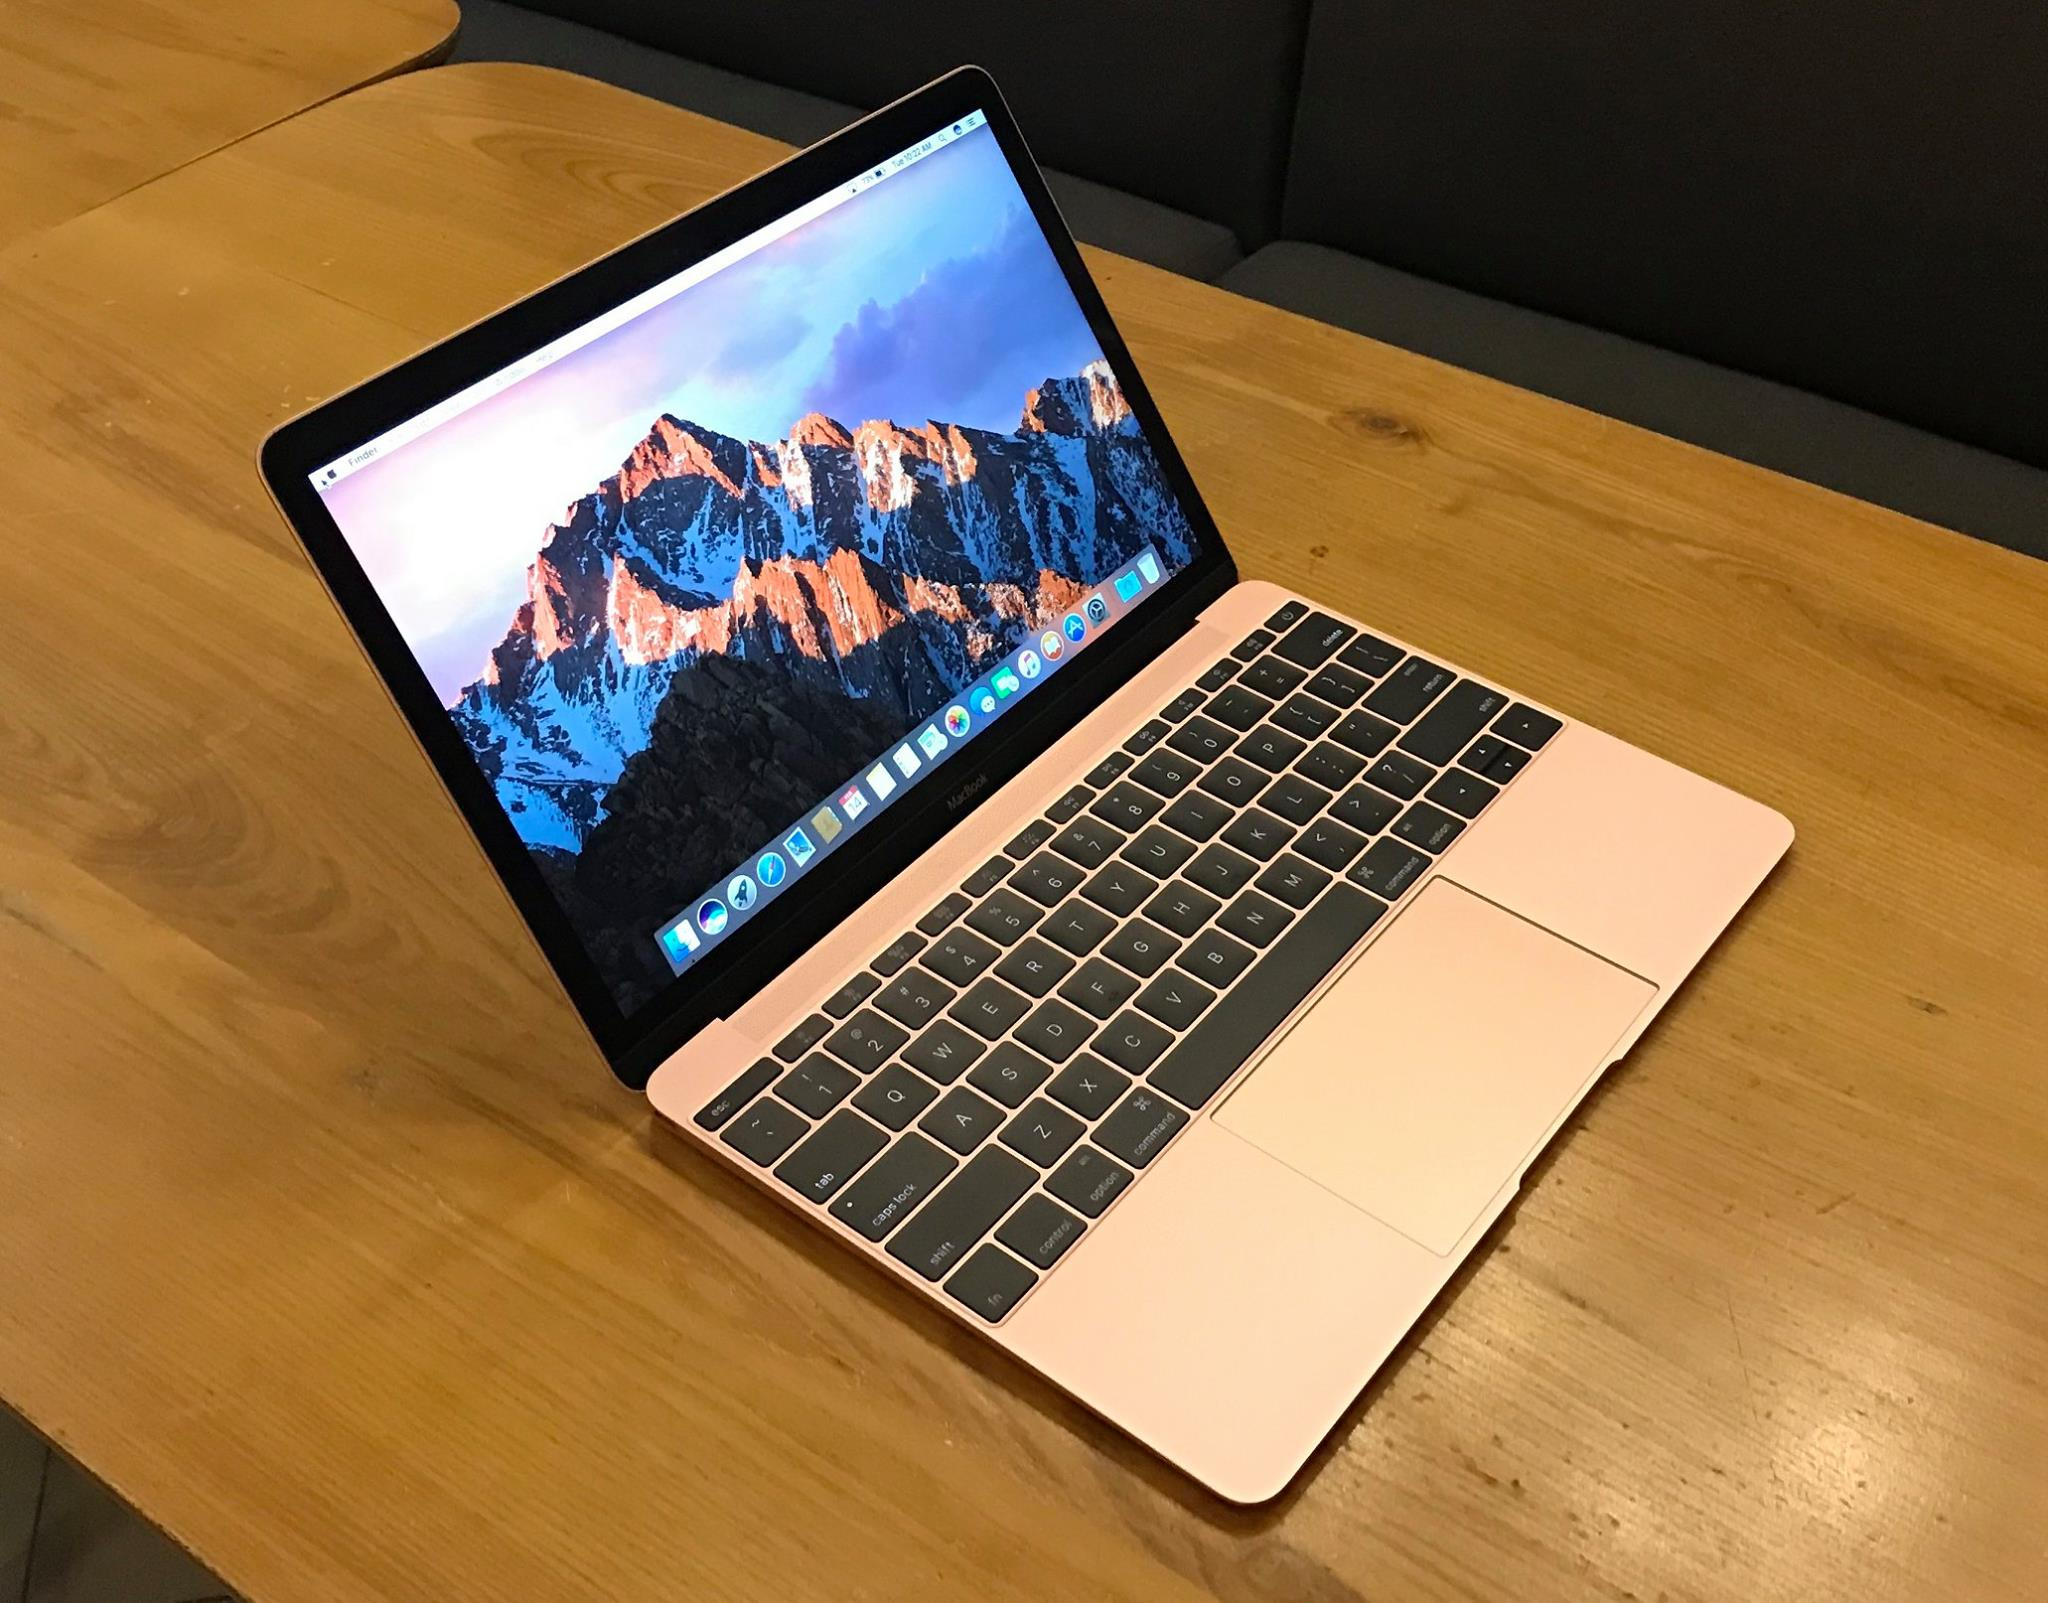 Apple The New Macbook 2016 - MLHA2 ROSE GLOD